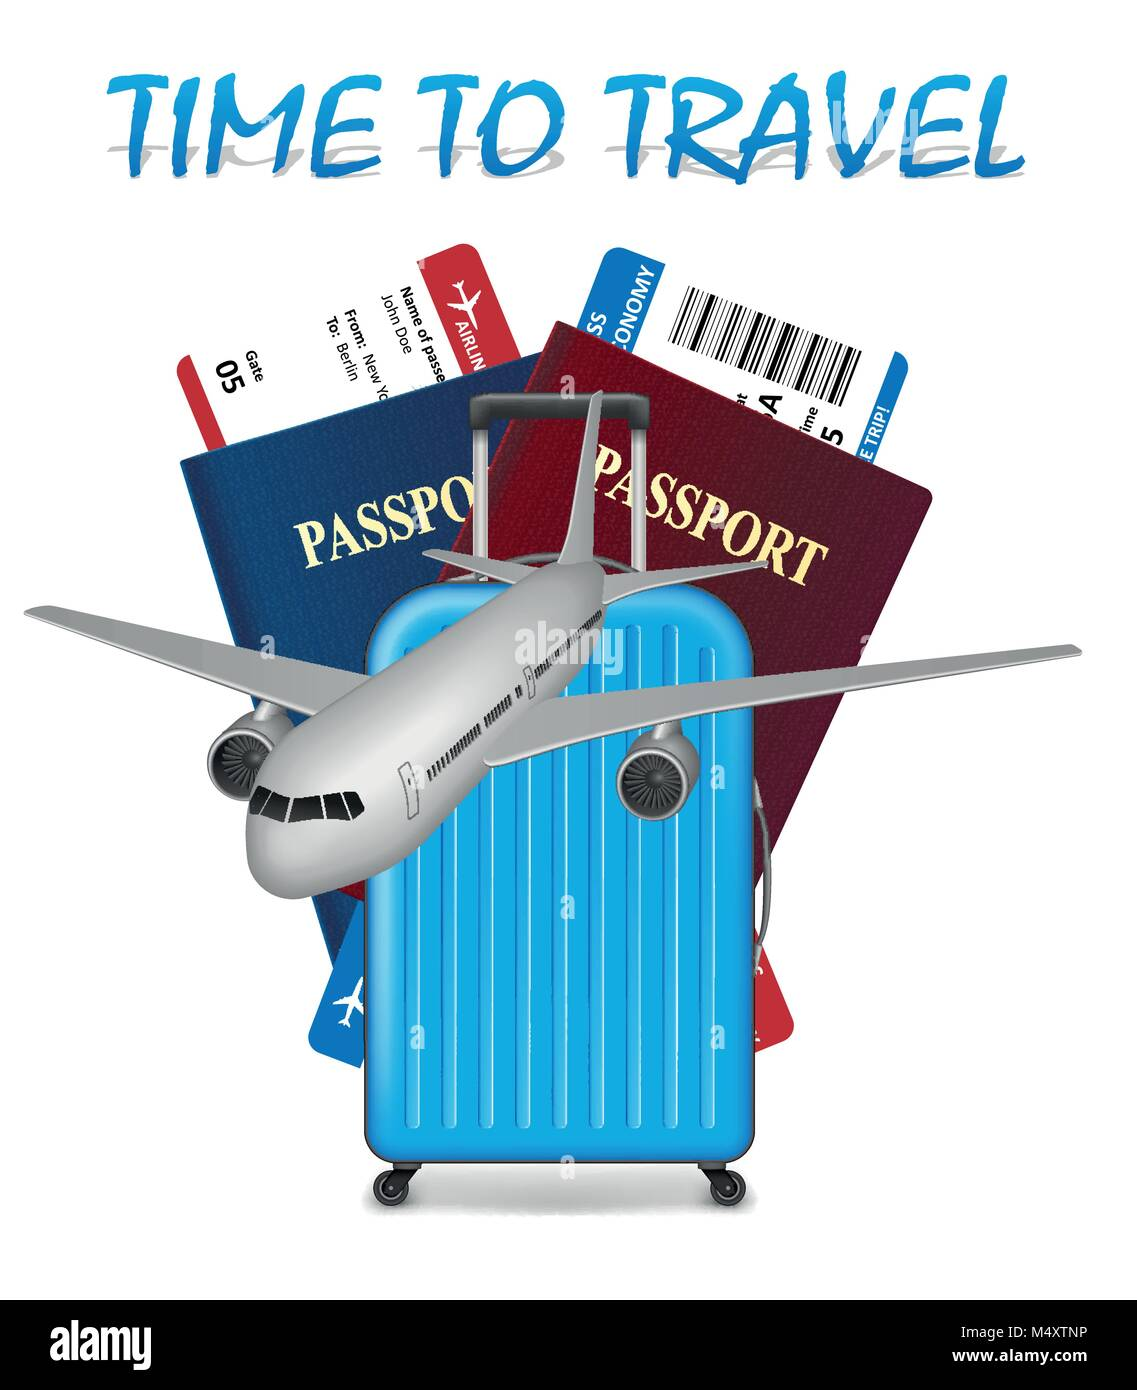 260f4bd5d6 Air travel international vacation concept. Business travel banner with  airline tickets